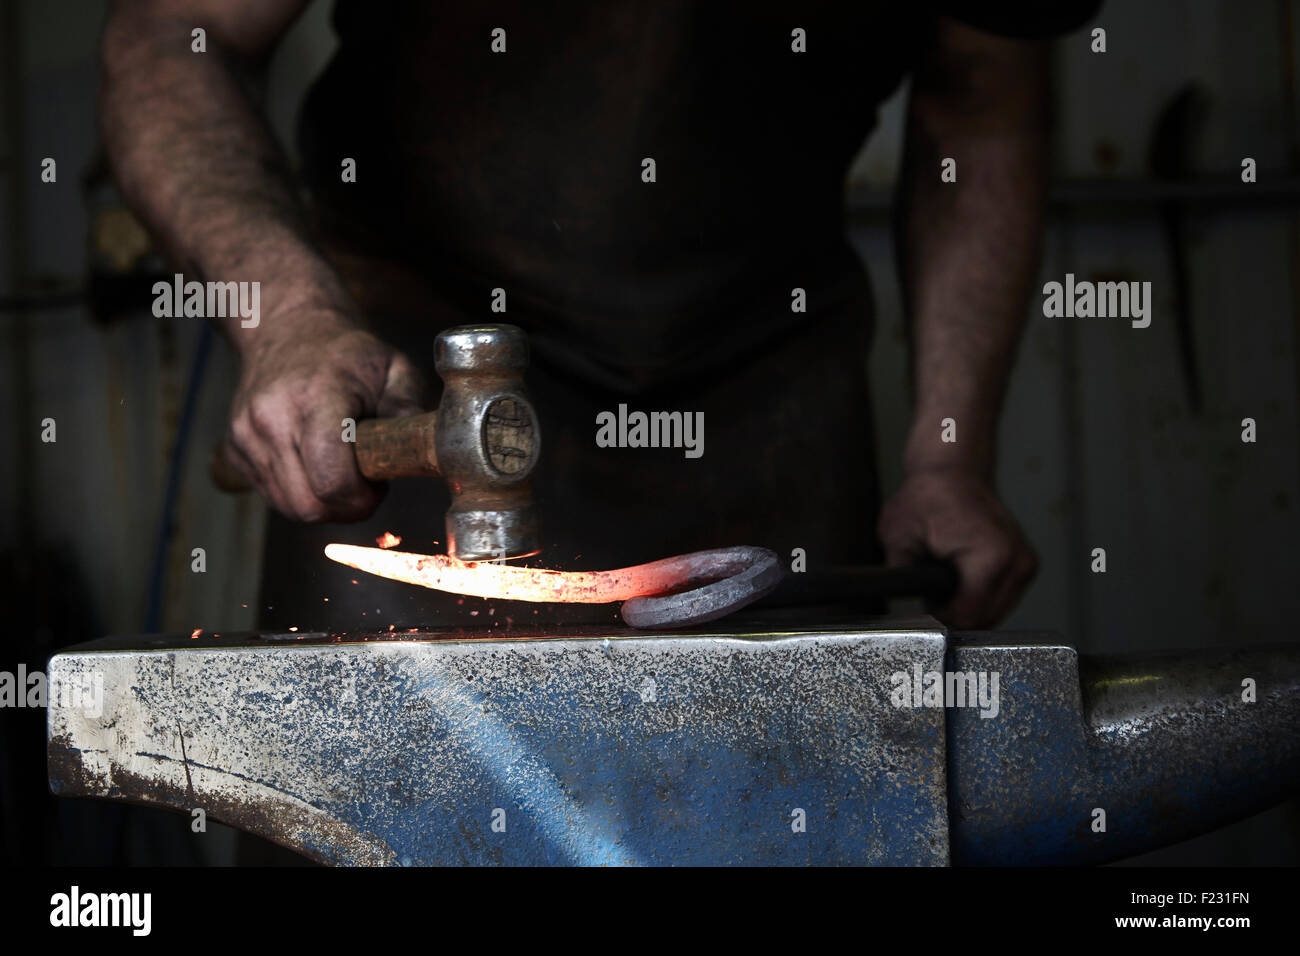 A blacksmith shaping a hot piece of iron on an anvil using a hammer. - Stock Image